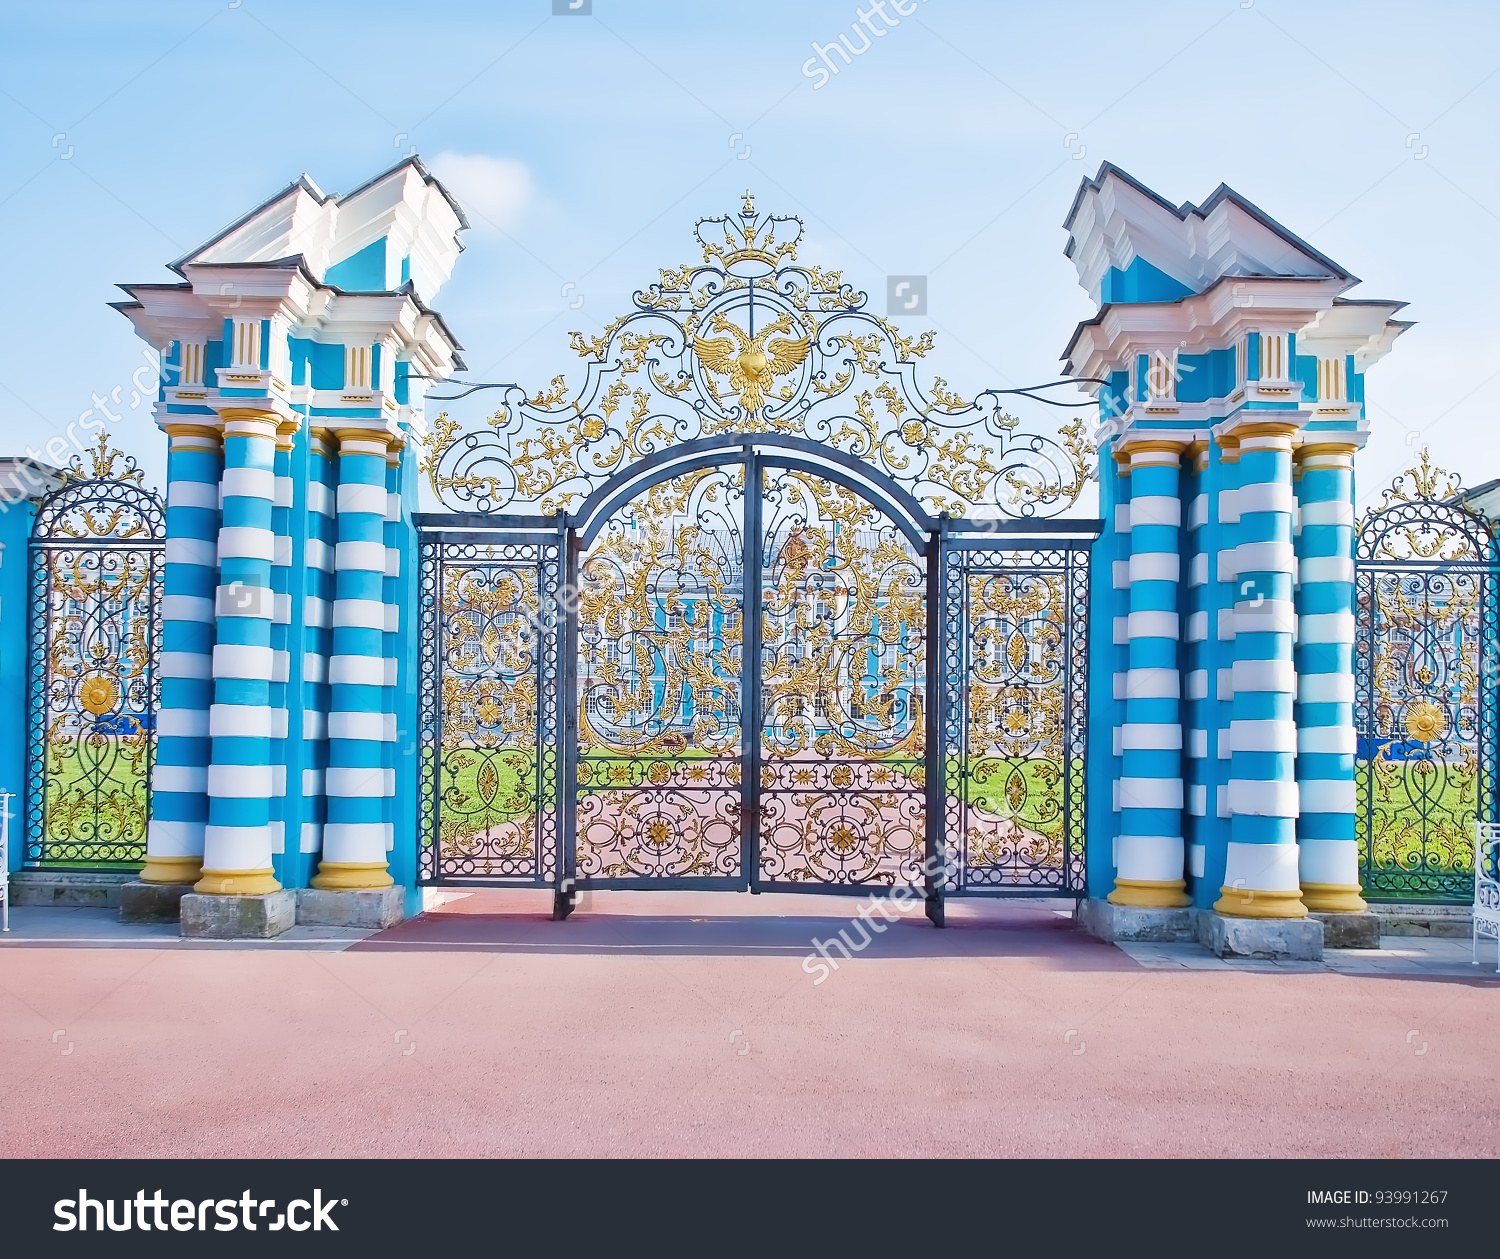 Palace clipart palace gate. Clipground golden gates catherines